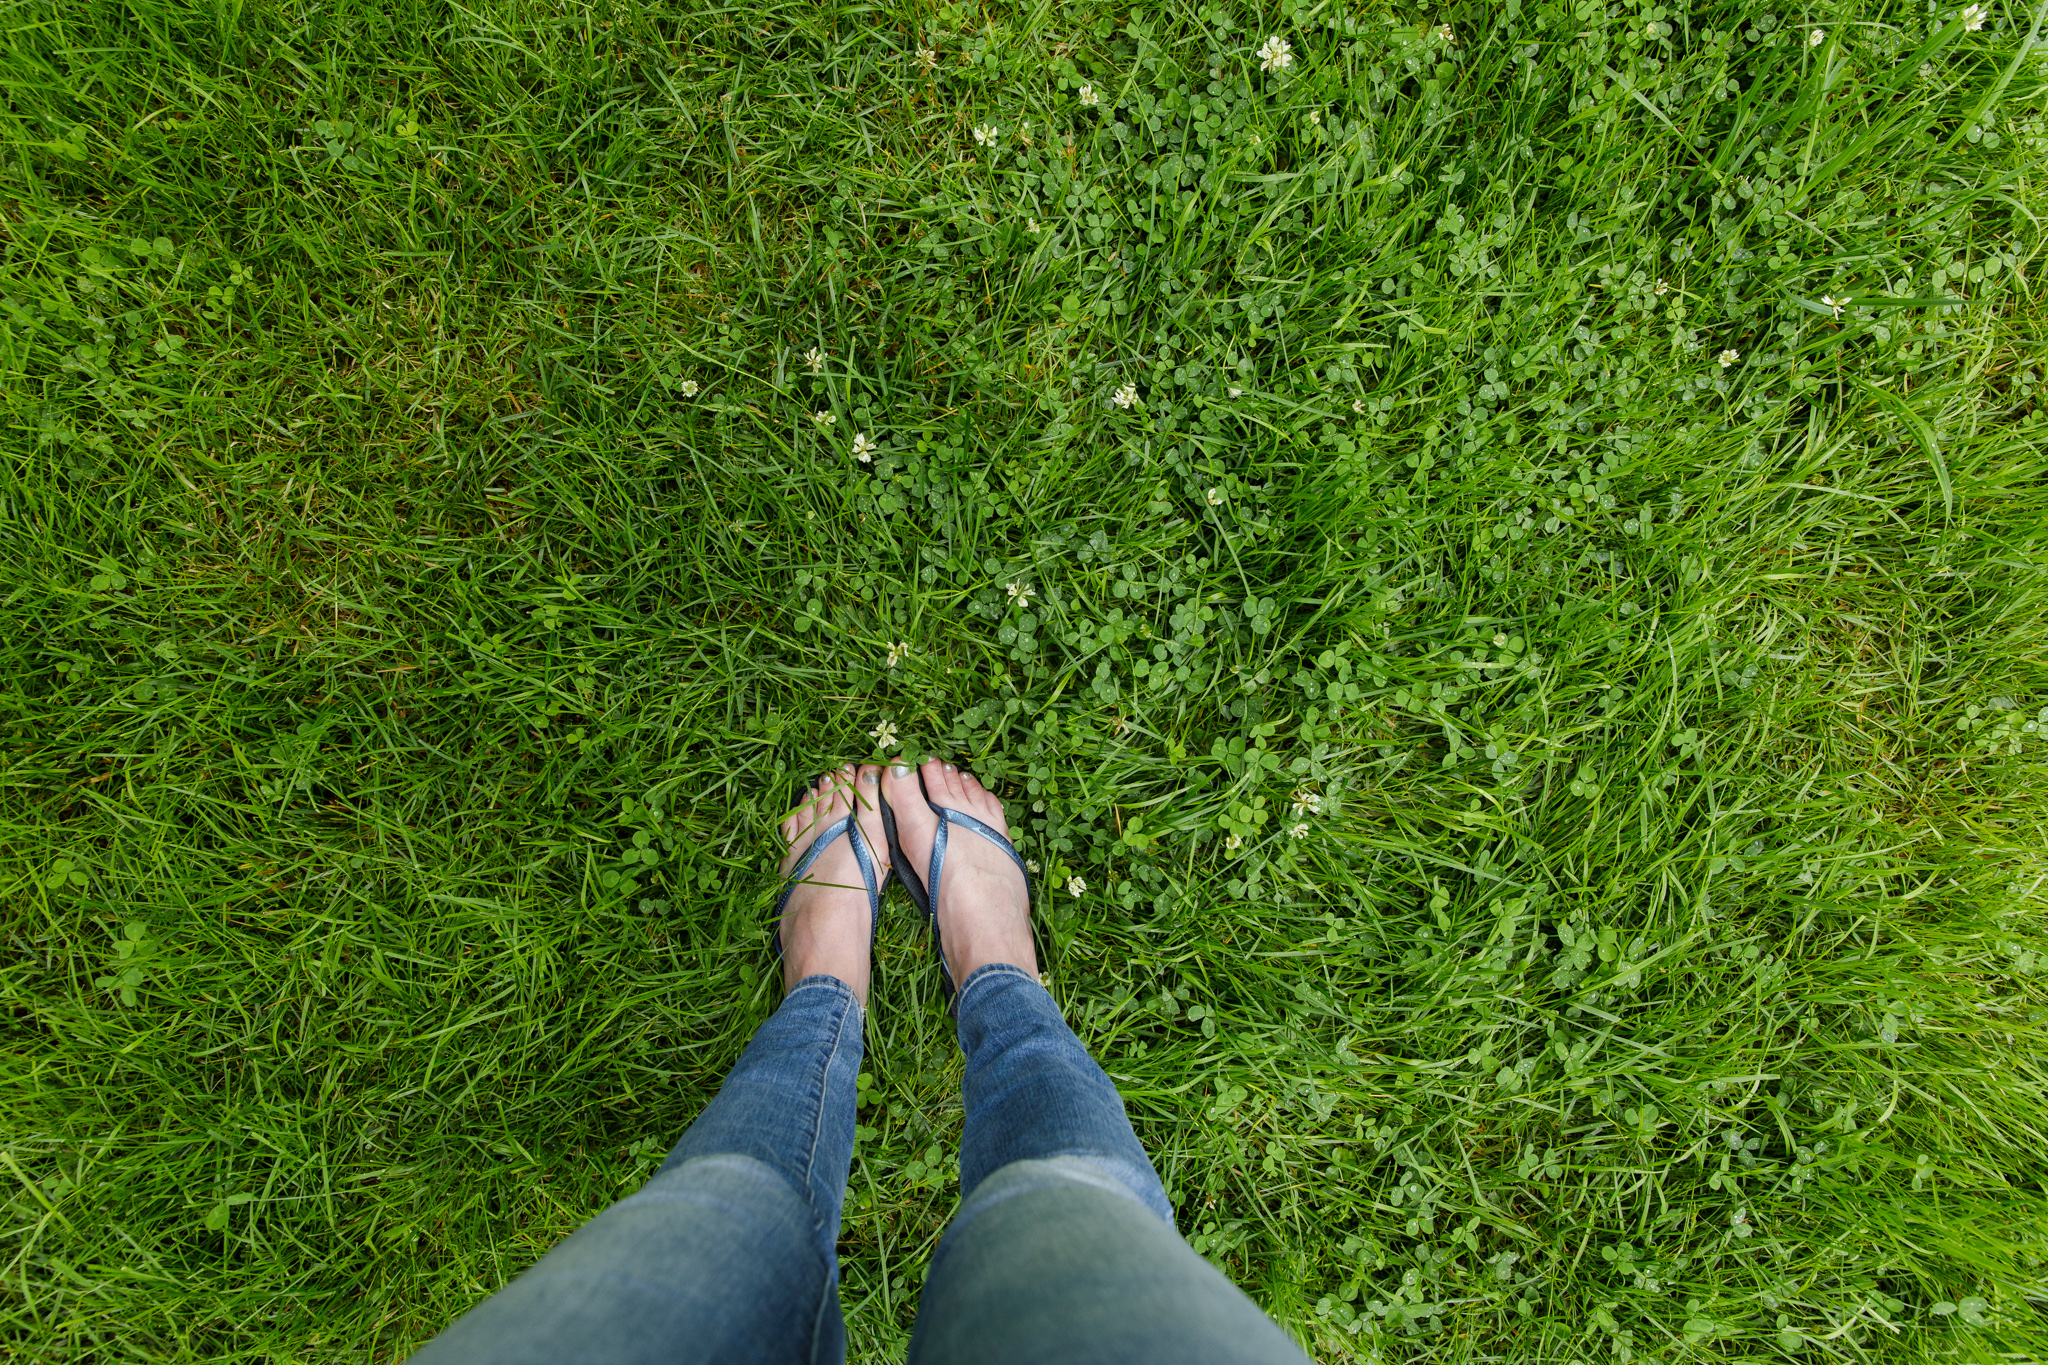 image of feet in grass taken from above